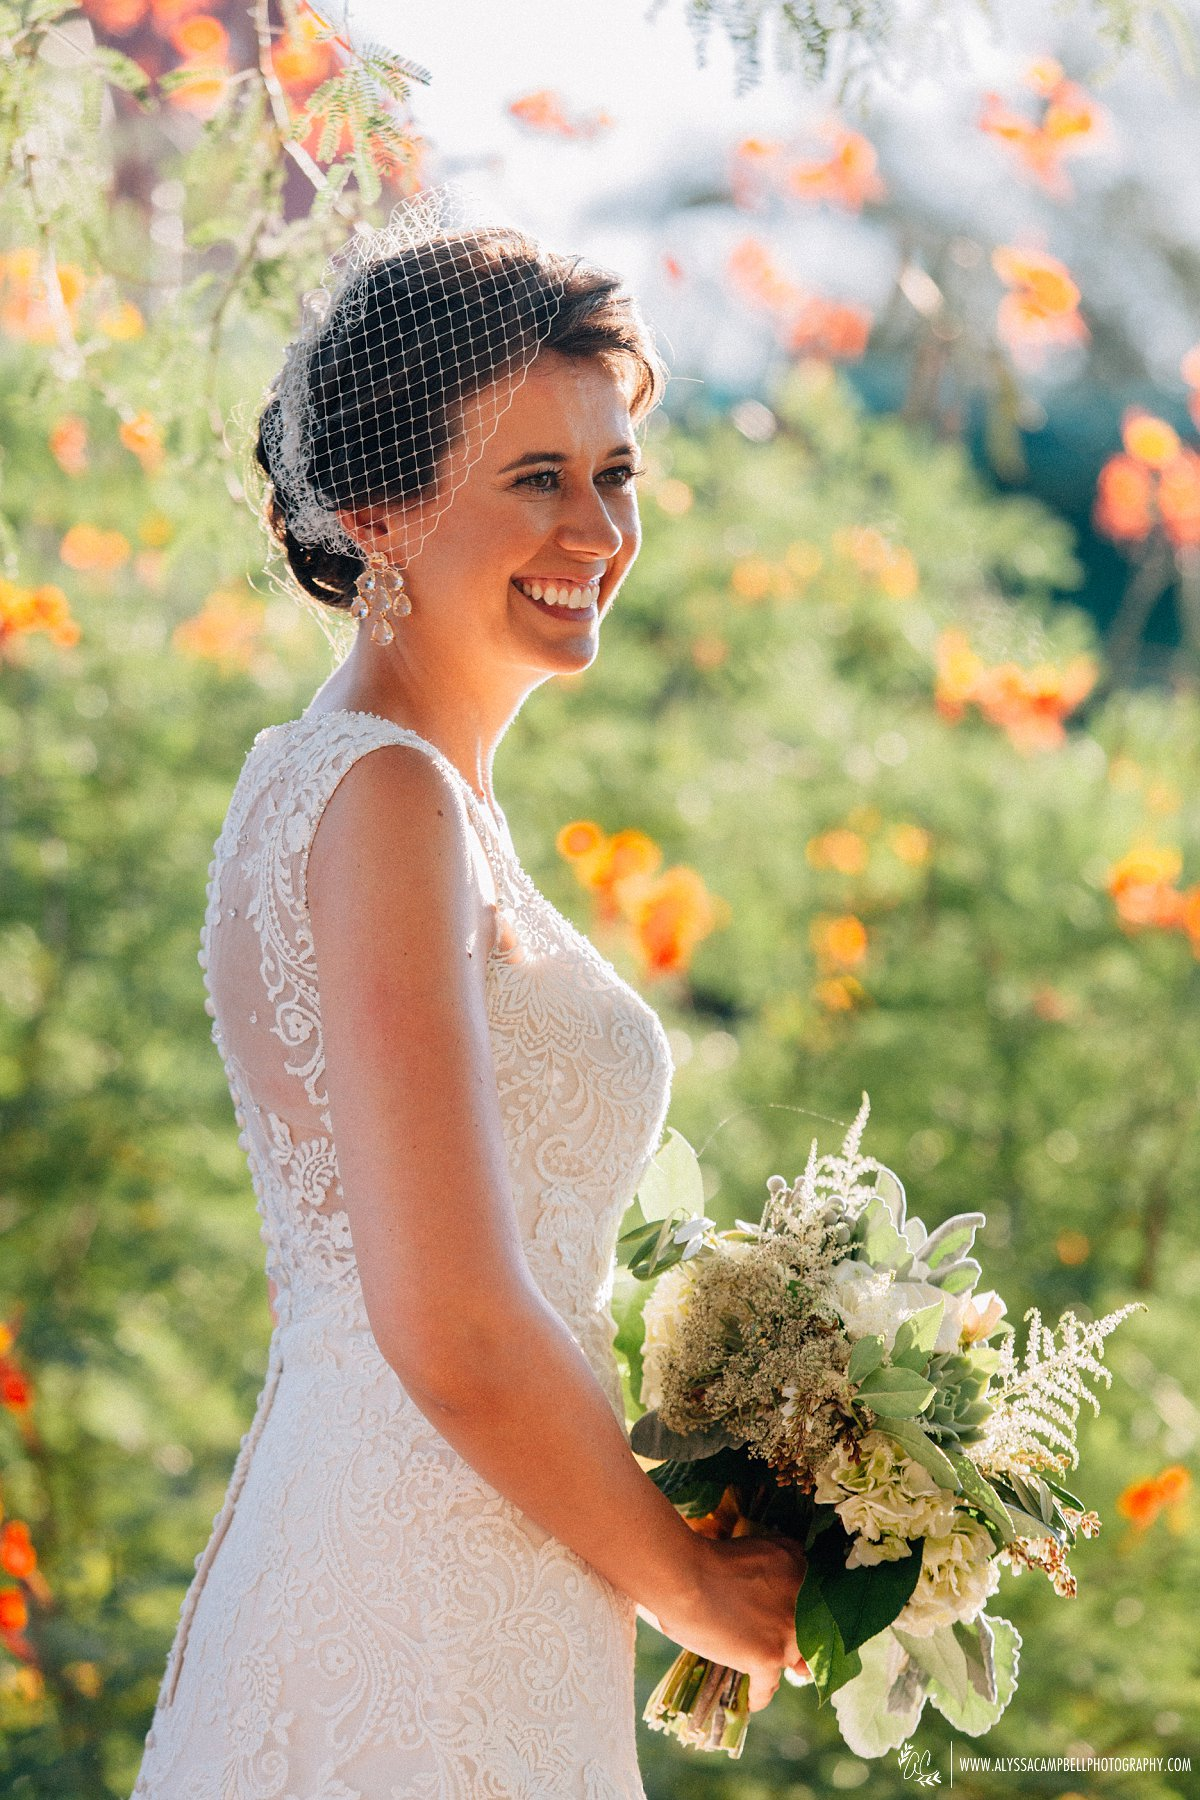 beautiful sunlit portrait of bride at Windmill Winery smiling with all over lace dress and birdcage veil